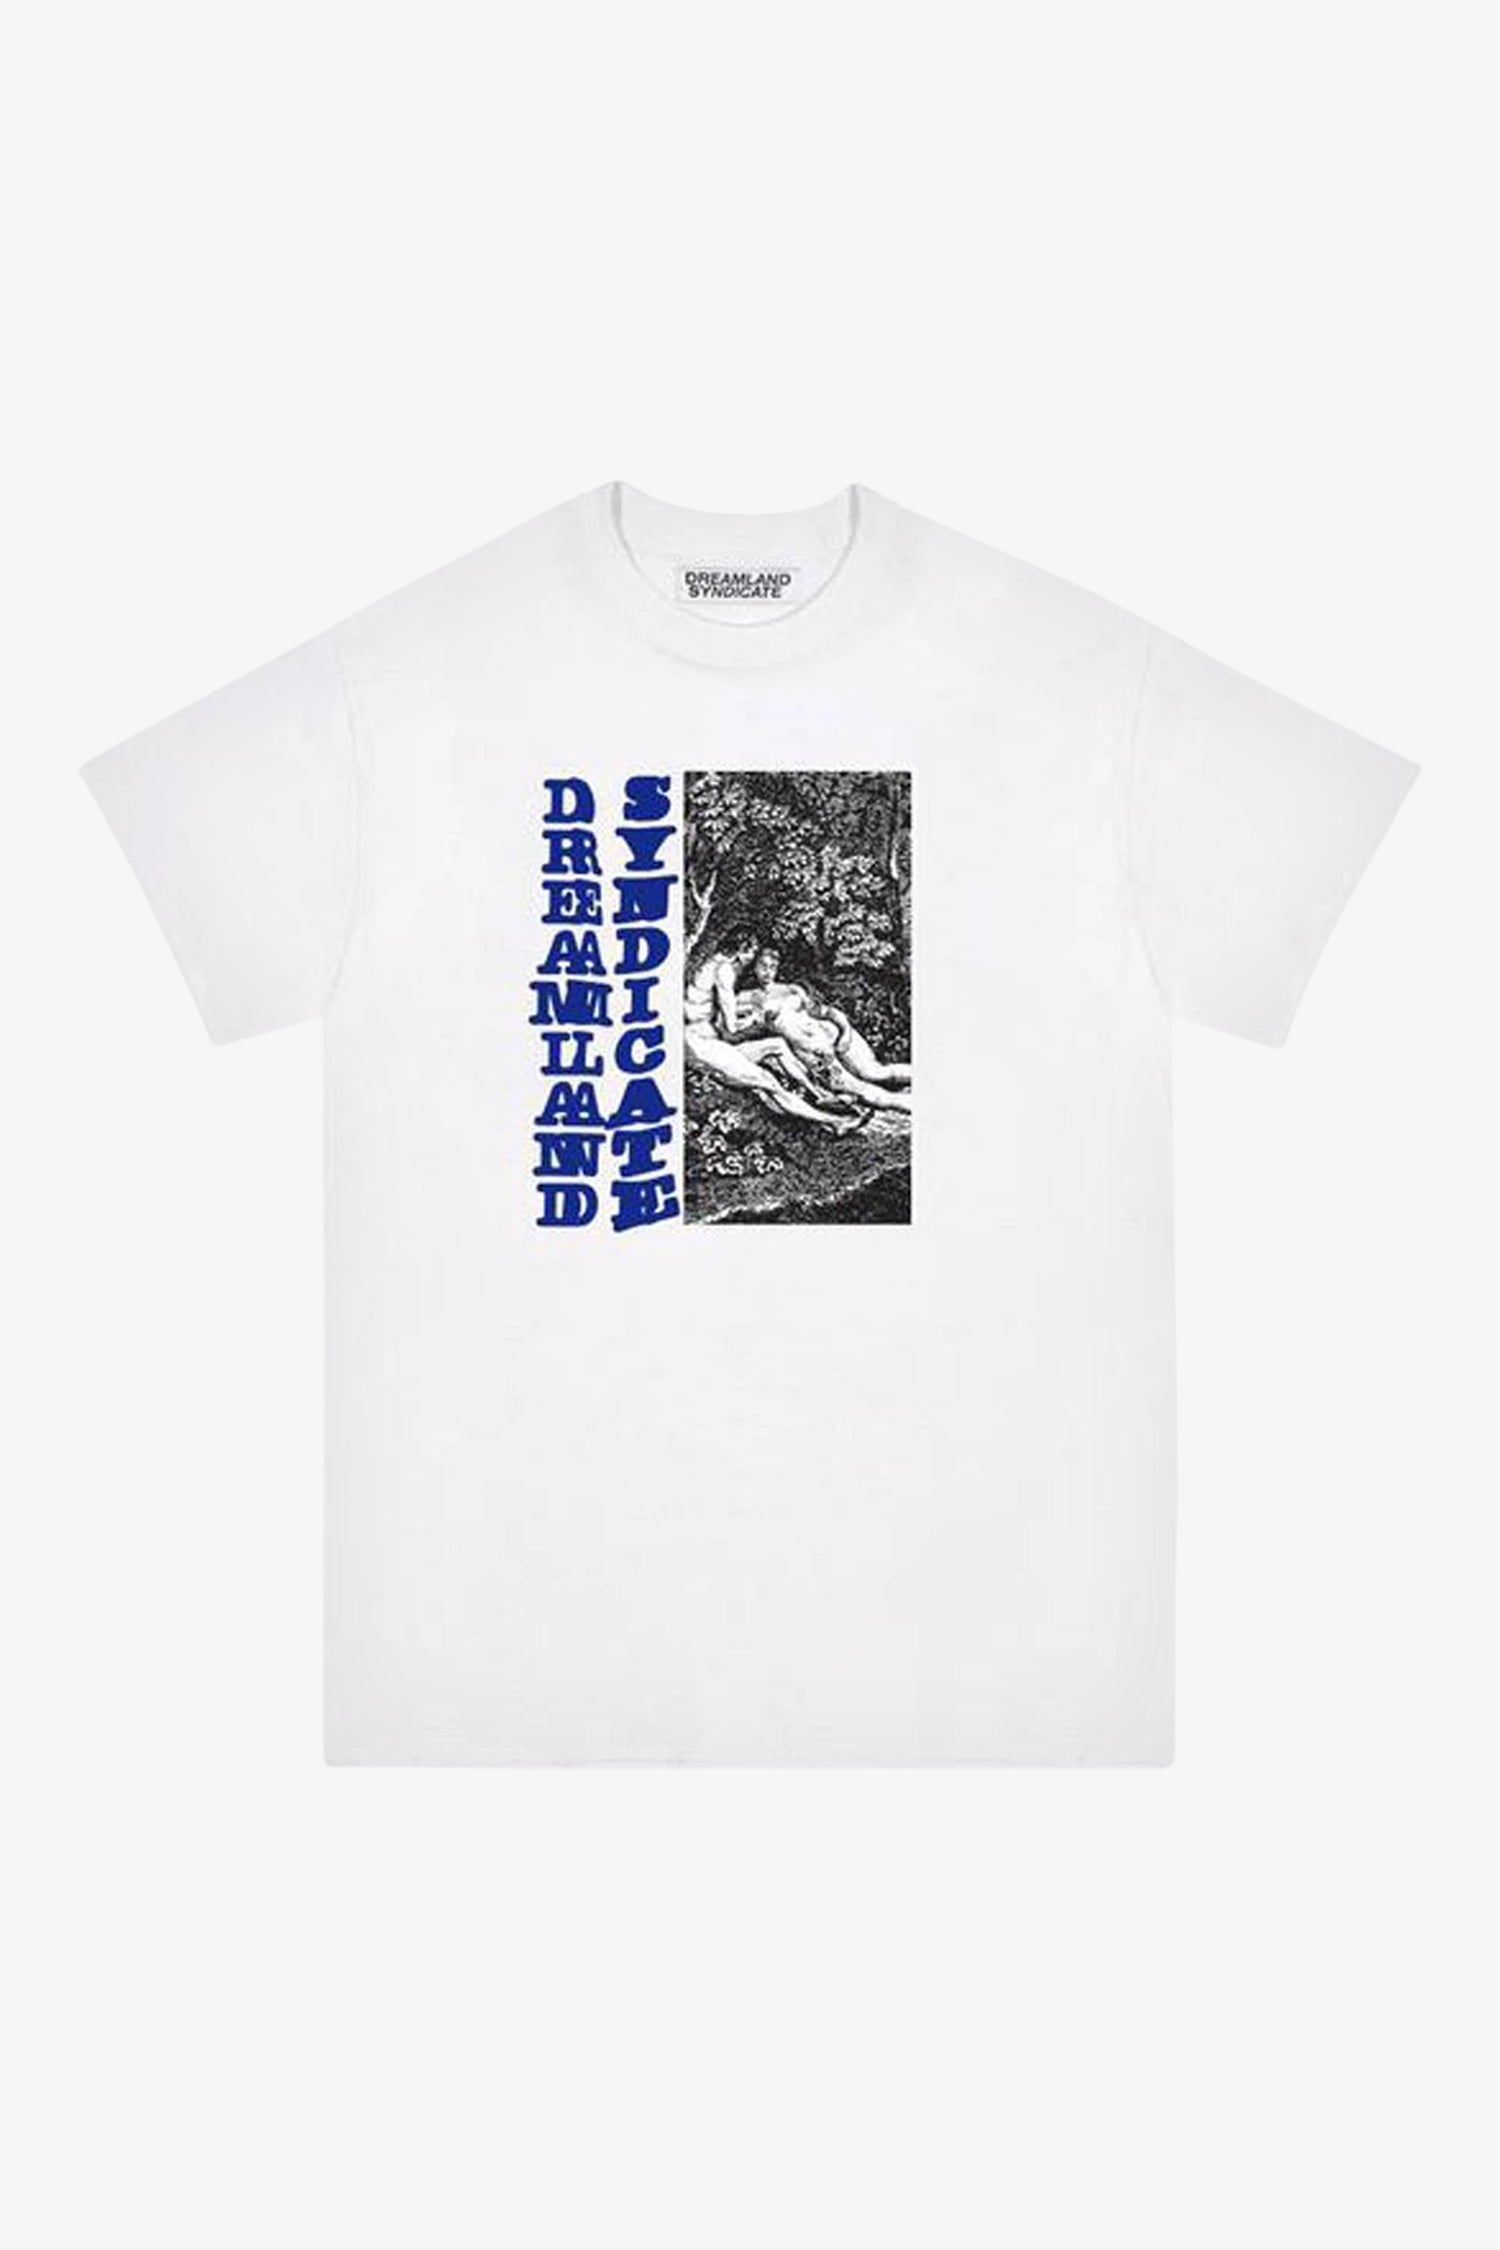 Selectshop FRAME - DREAMLAND SYNDICATE Forest T-Shirt T-Shirt Dubai